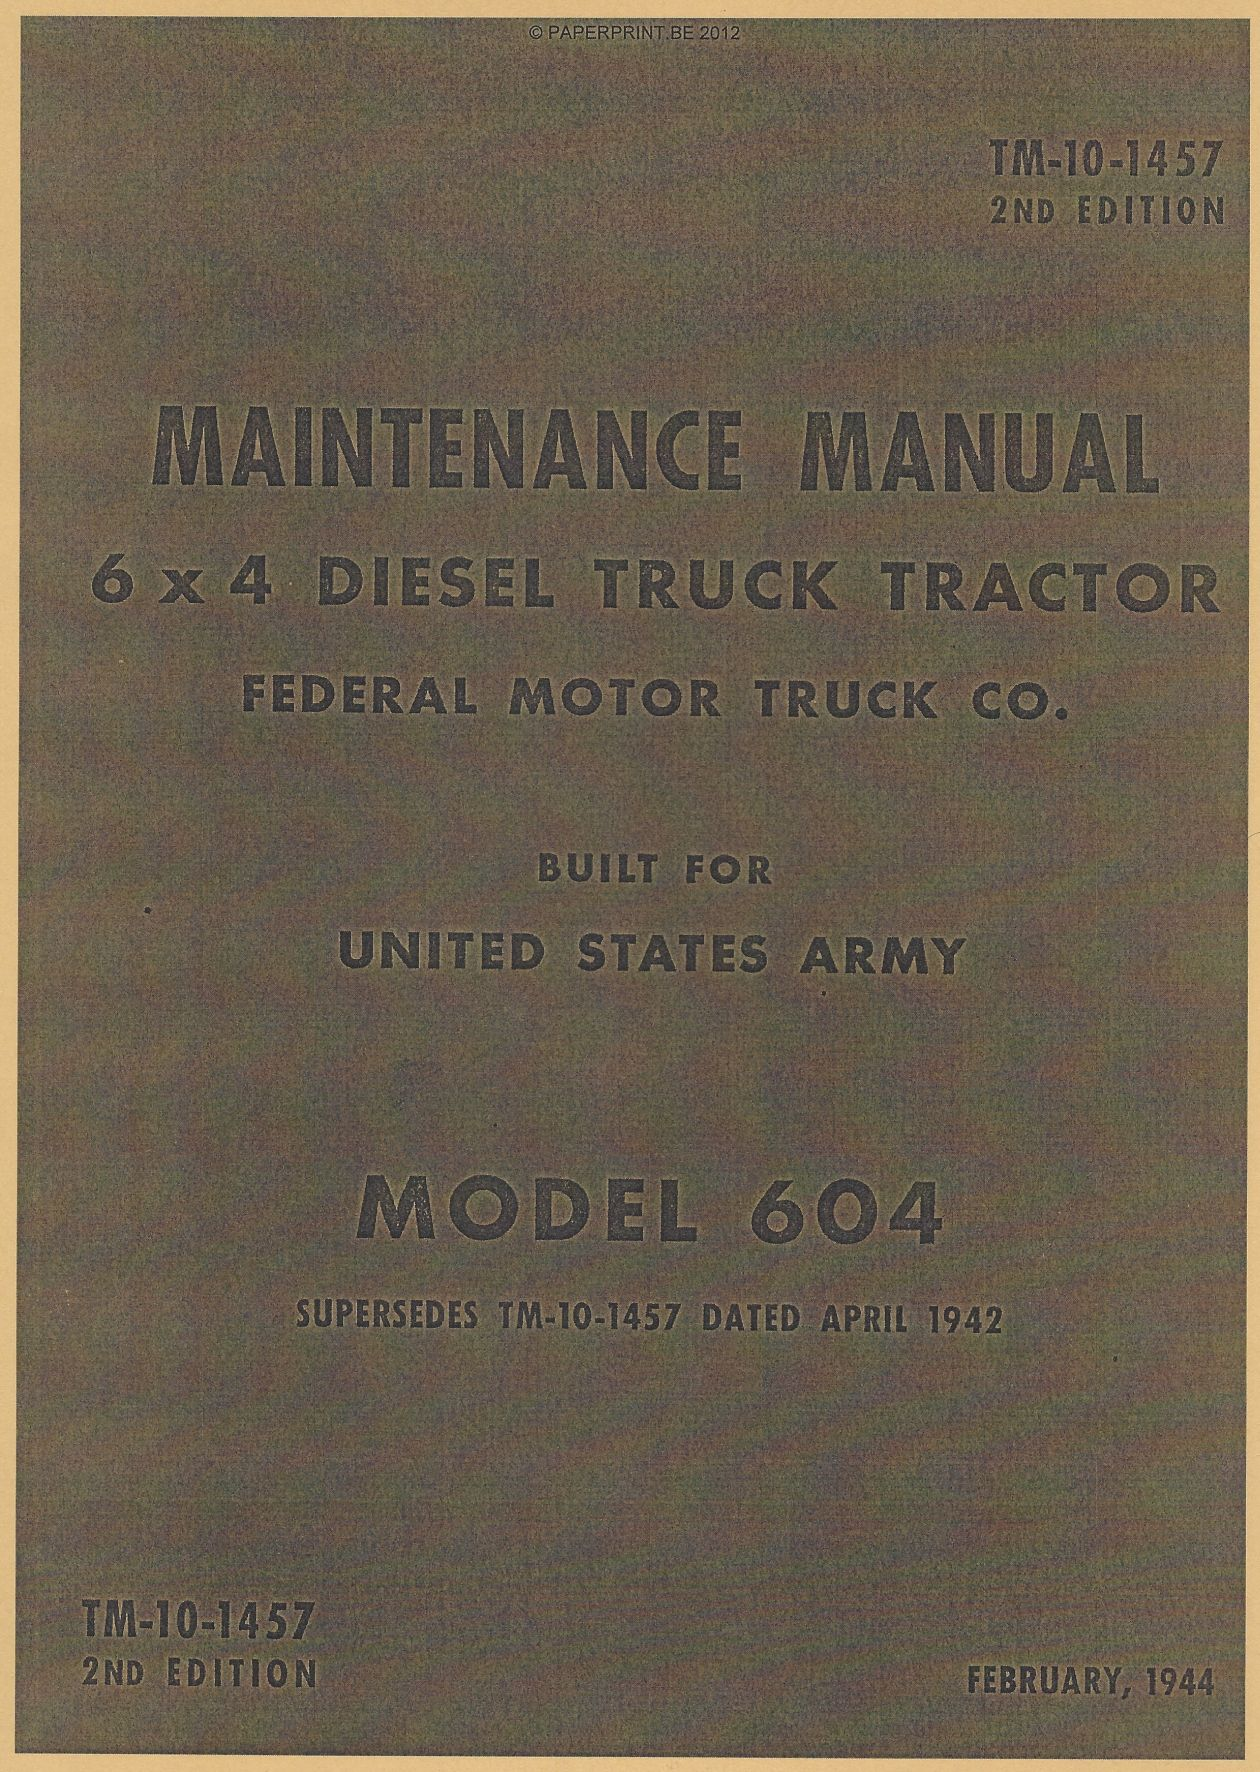 TM 10-1457 US FEDERAL MAINTENANCE MANUAL 6x4 DIESEL TRUCK TRACTOR MODEL 604